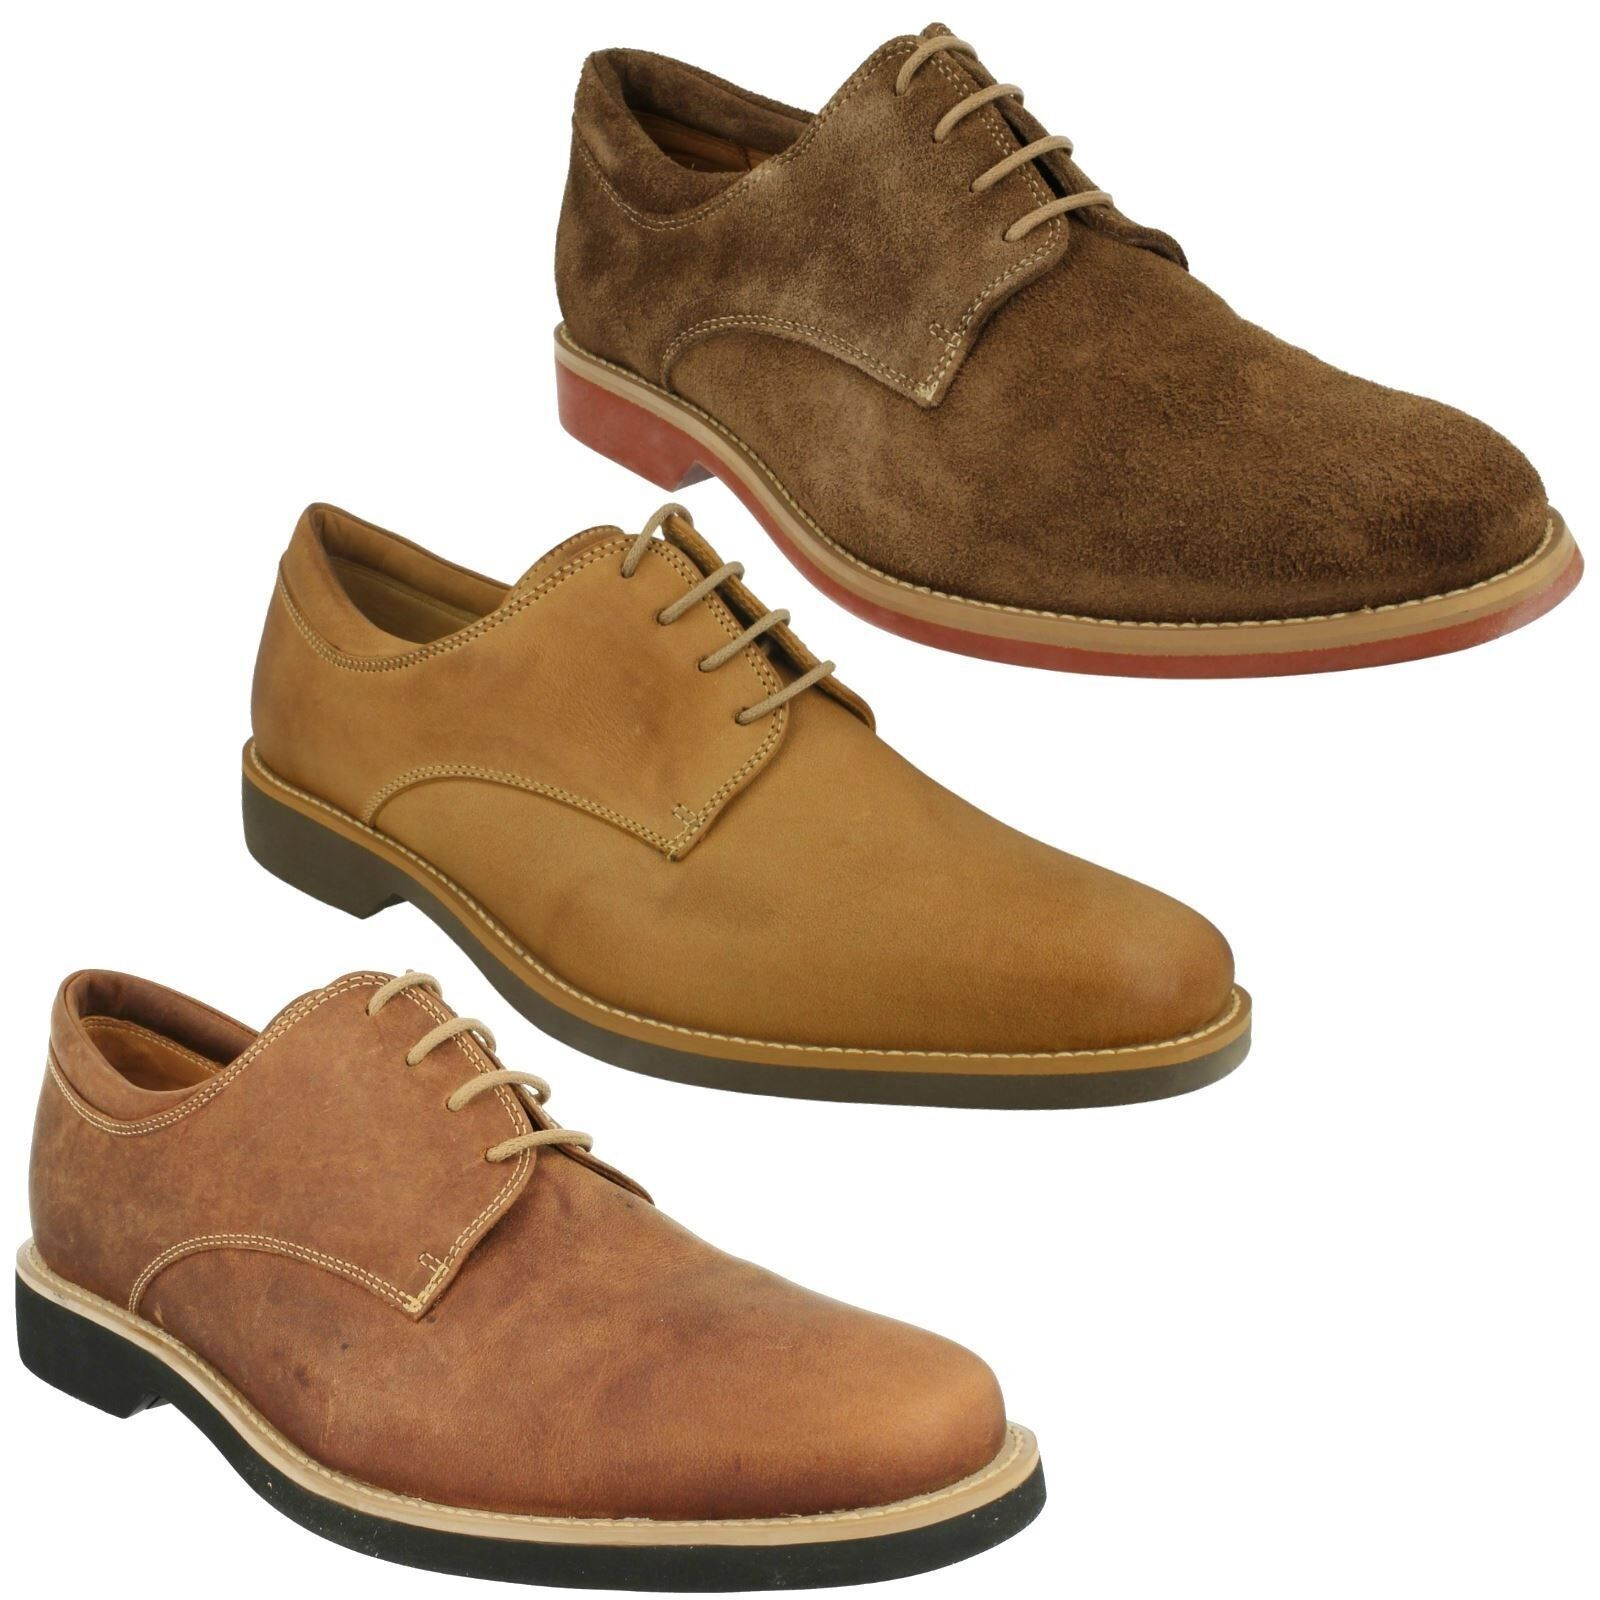 Herren ANATOMIC DELTA LACE UP TAN BROWN PEACH SUEDE LEATHER SMART FORMAL Schuhe